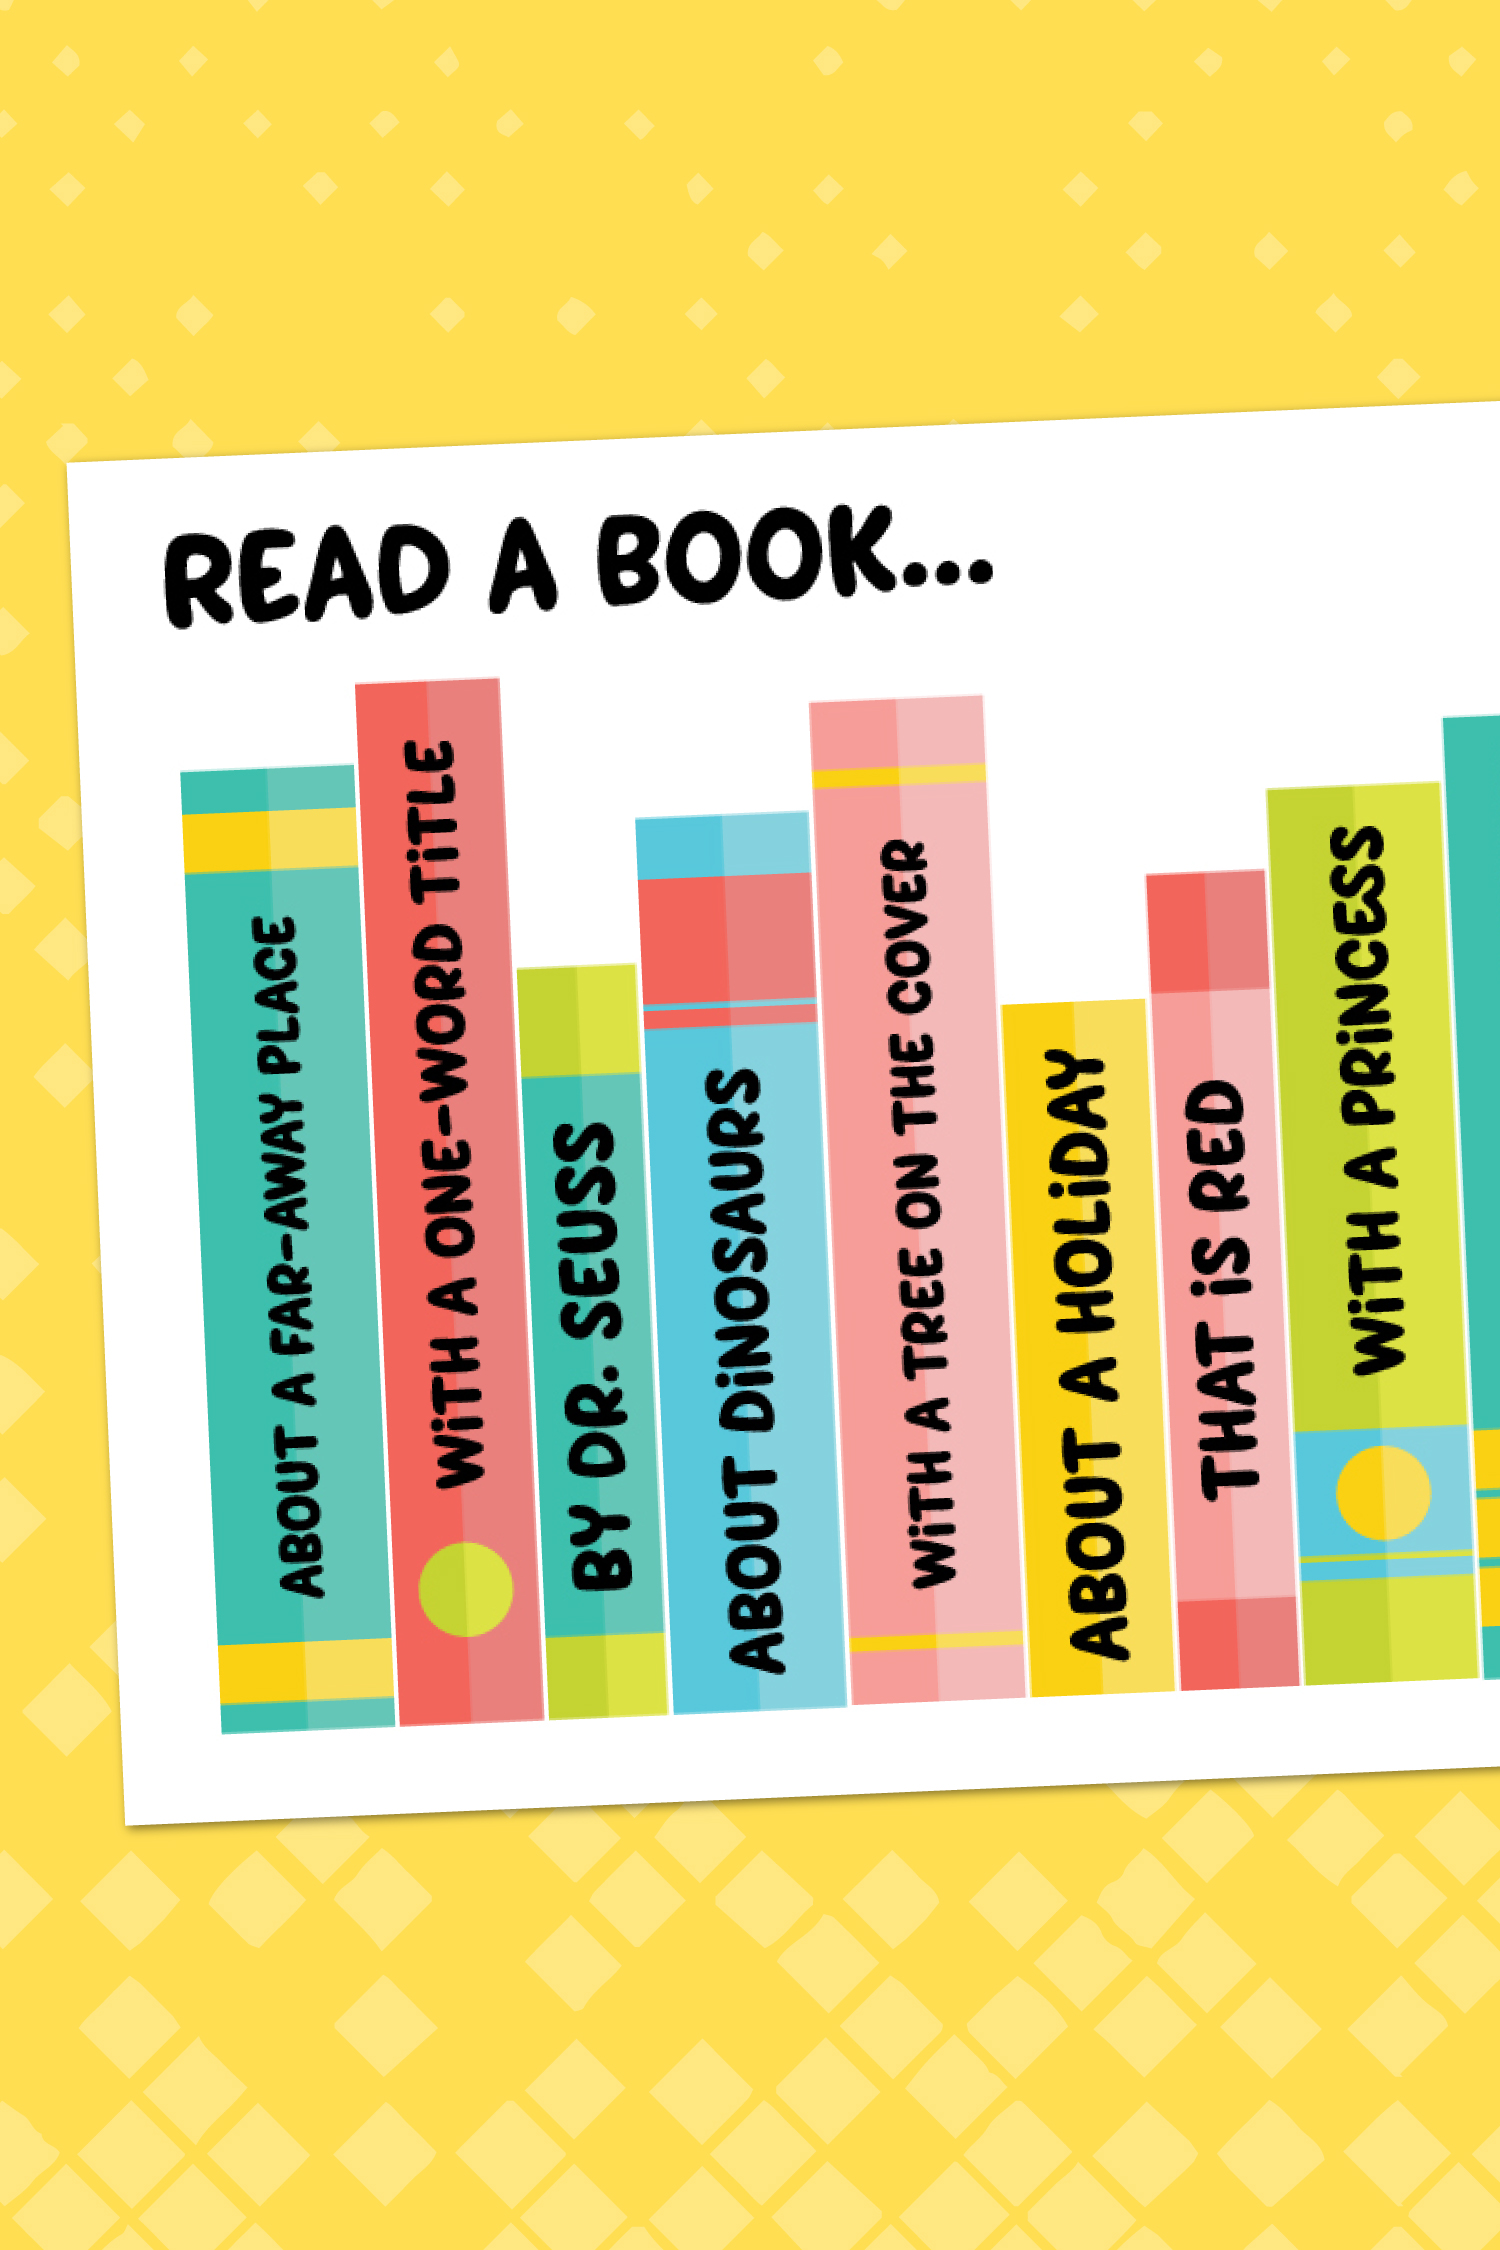 Encourage your kids to read more with this free printable reading challenge! Your kids will have fun crossing books off the list as they work their way down this fun, colorful bookshelf!